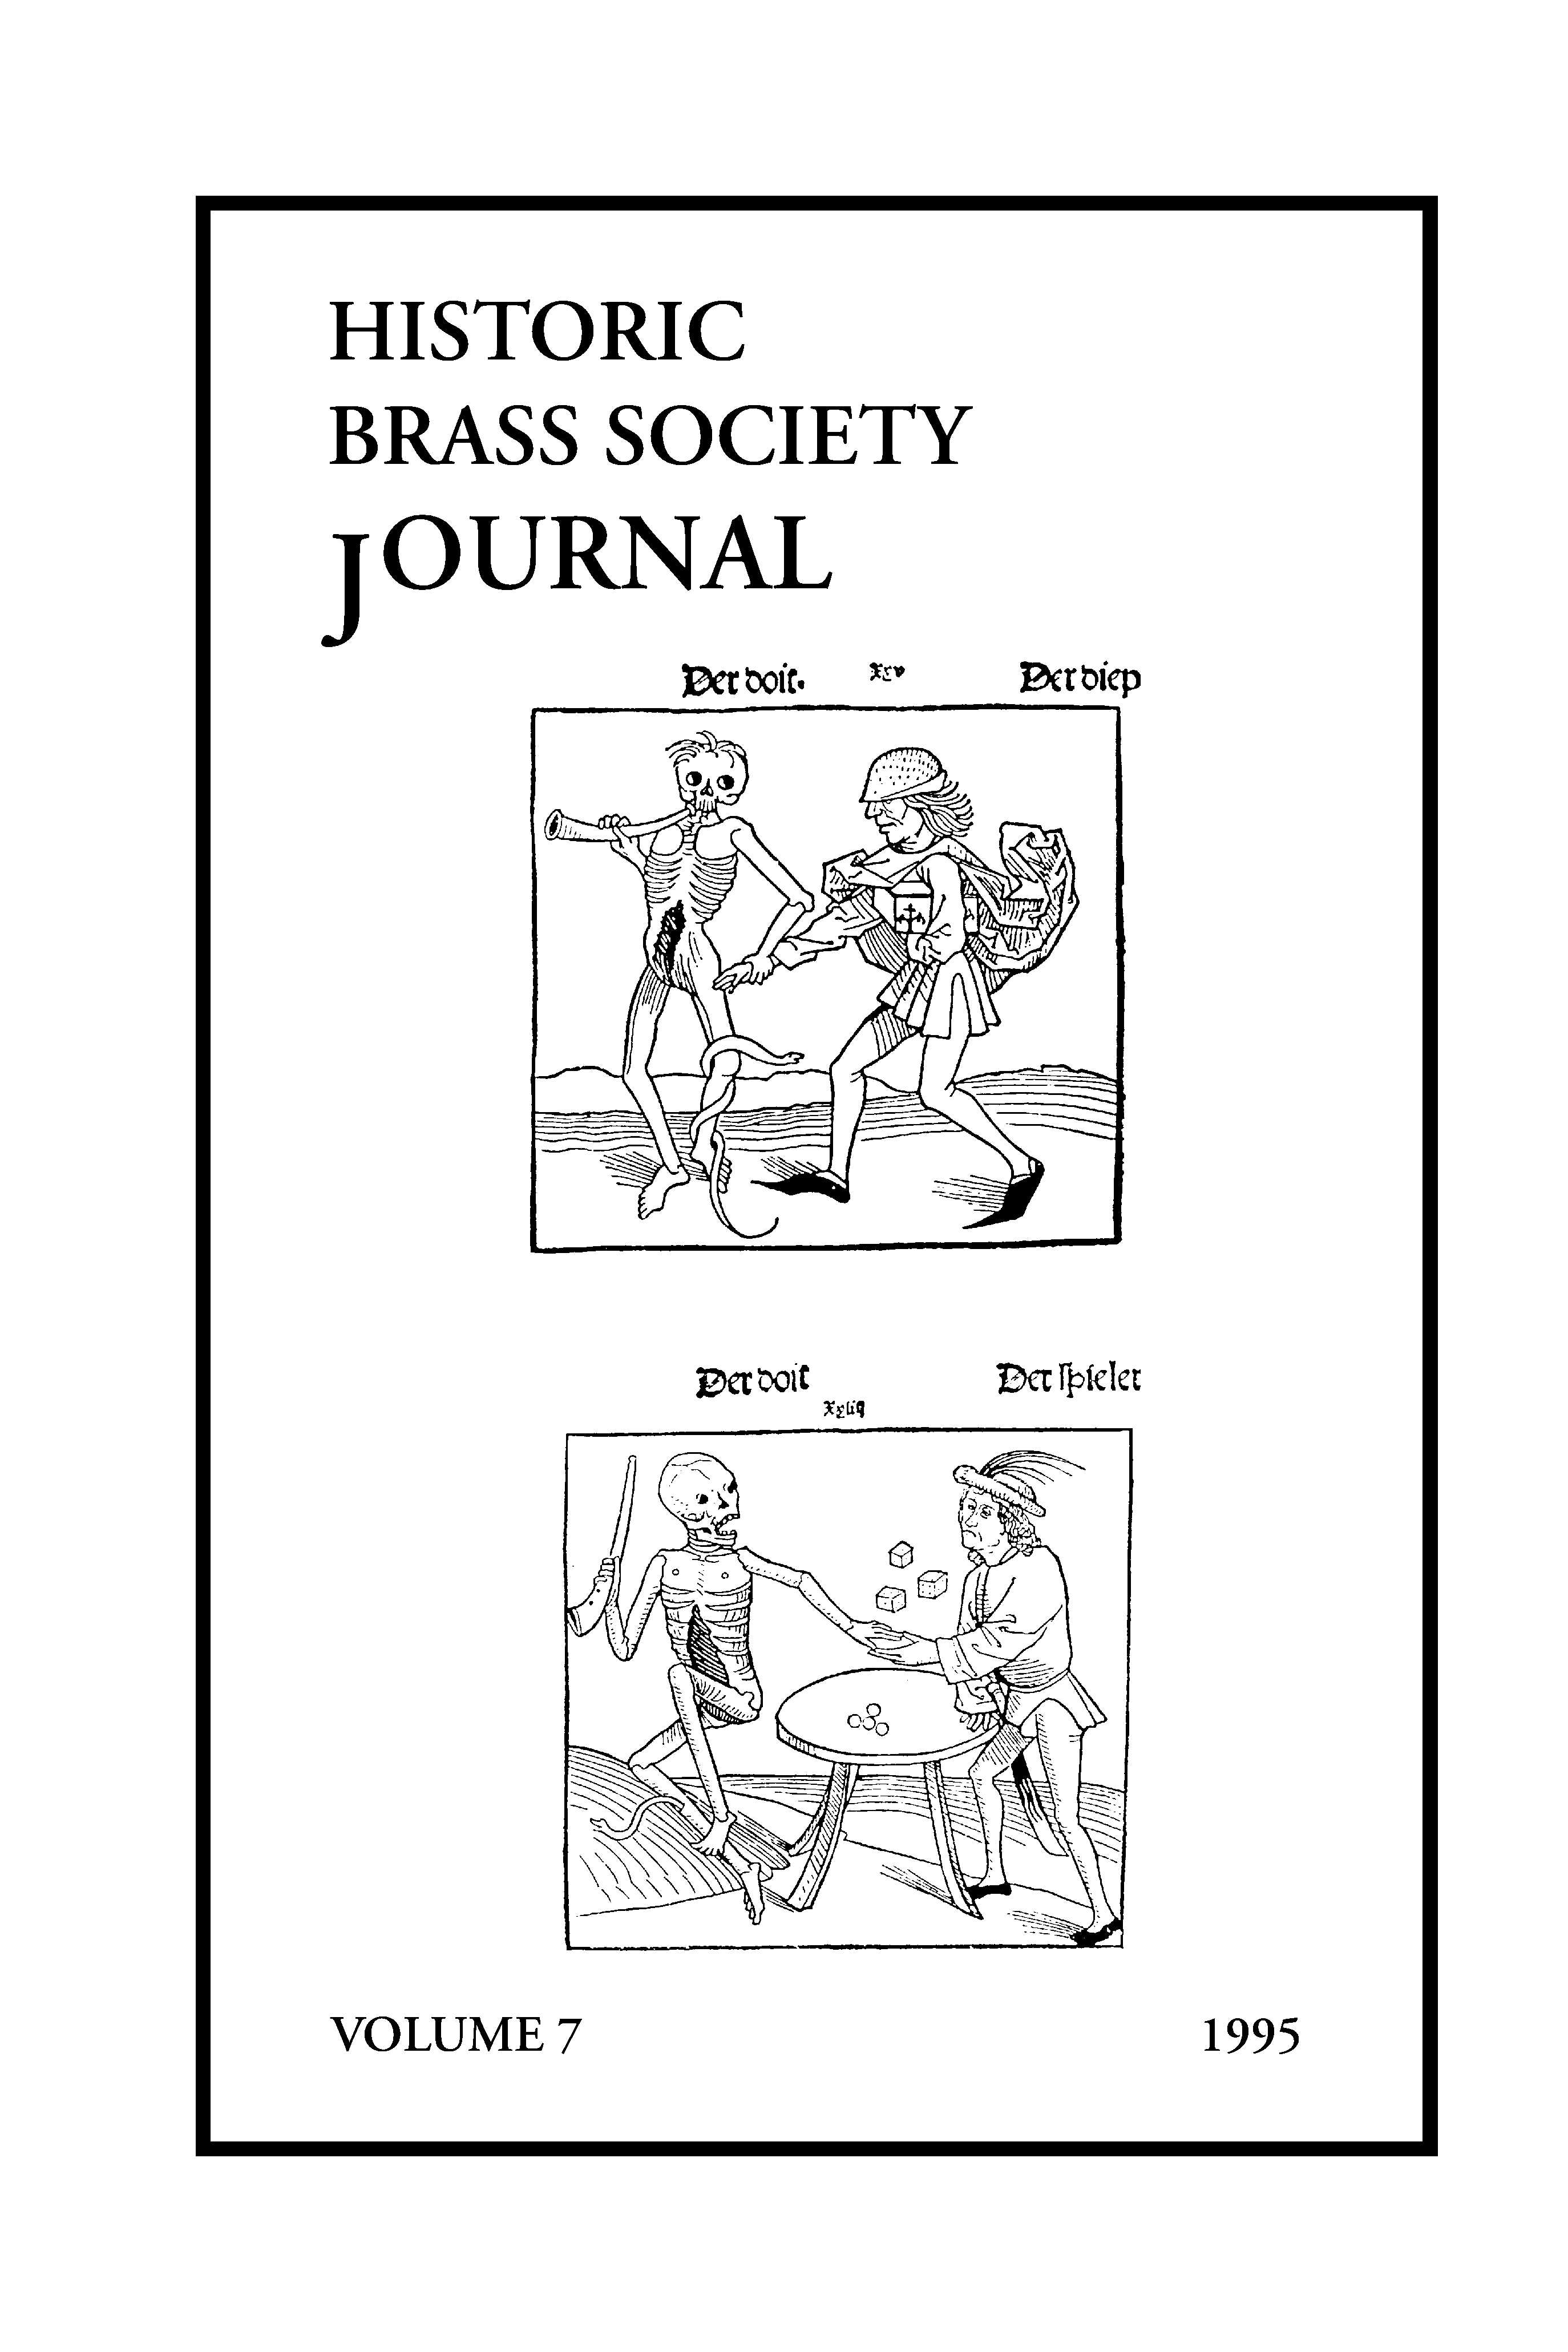 Historic Brass Journal - Volume 7 - 1995